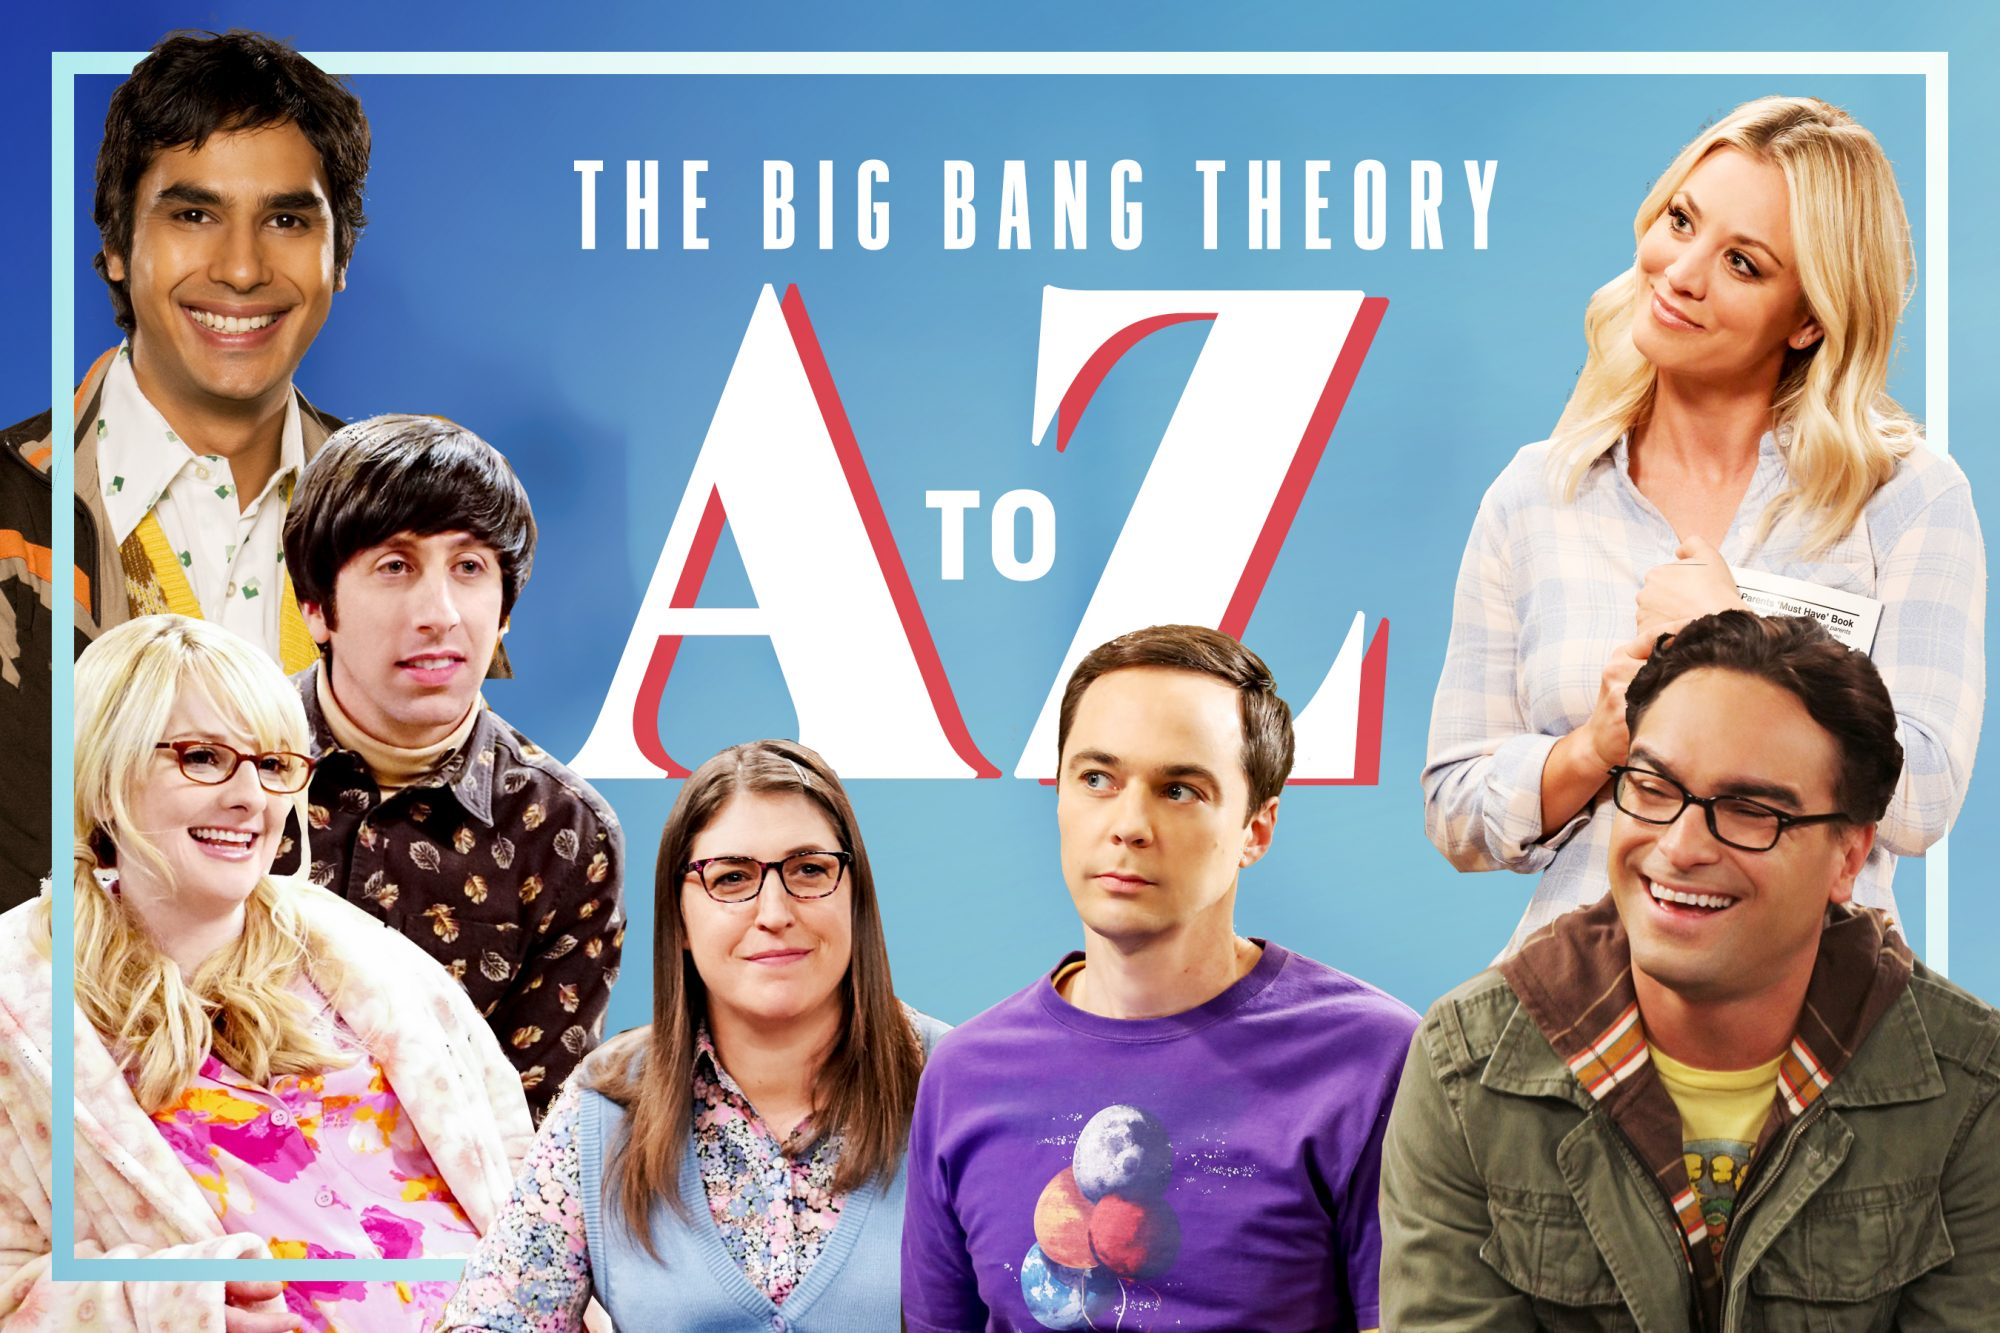 Big Bang Theory A to Z